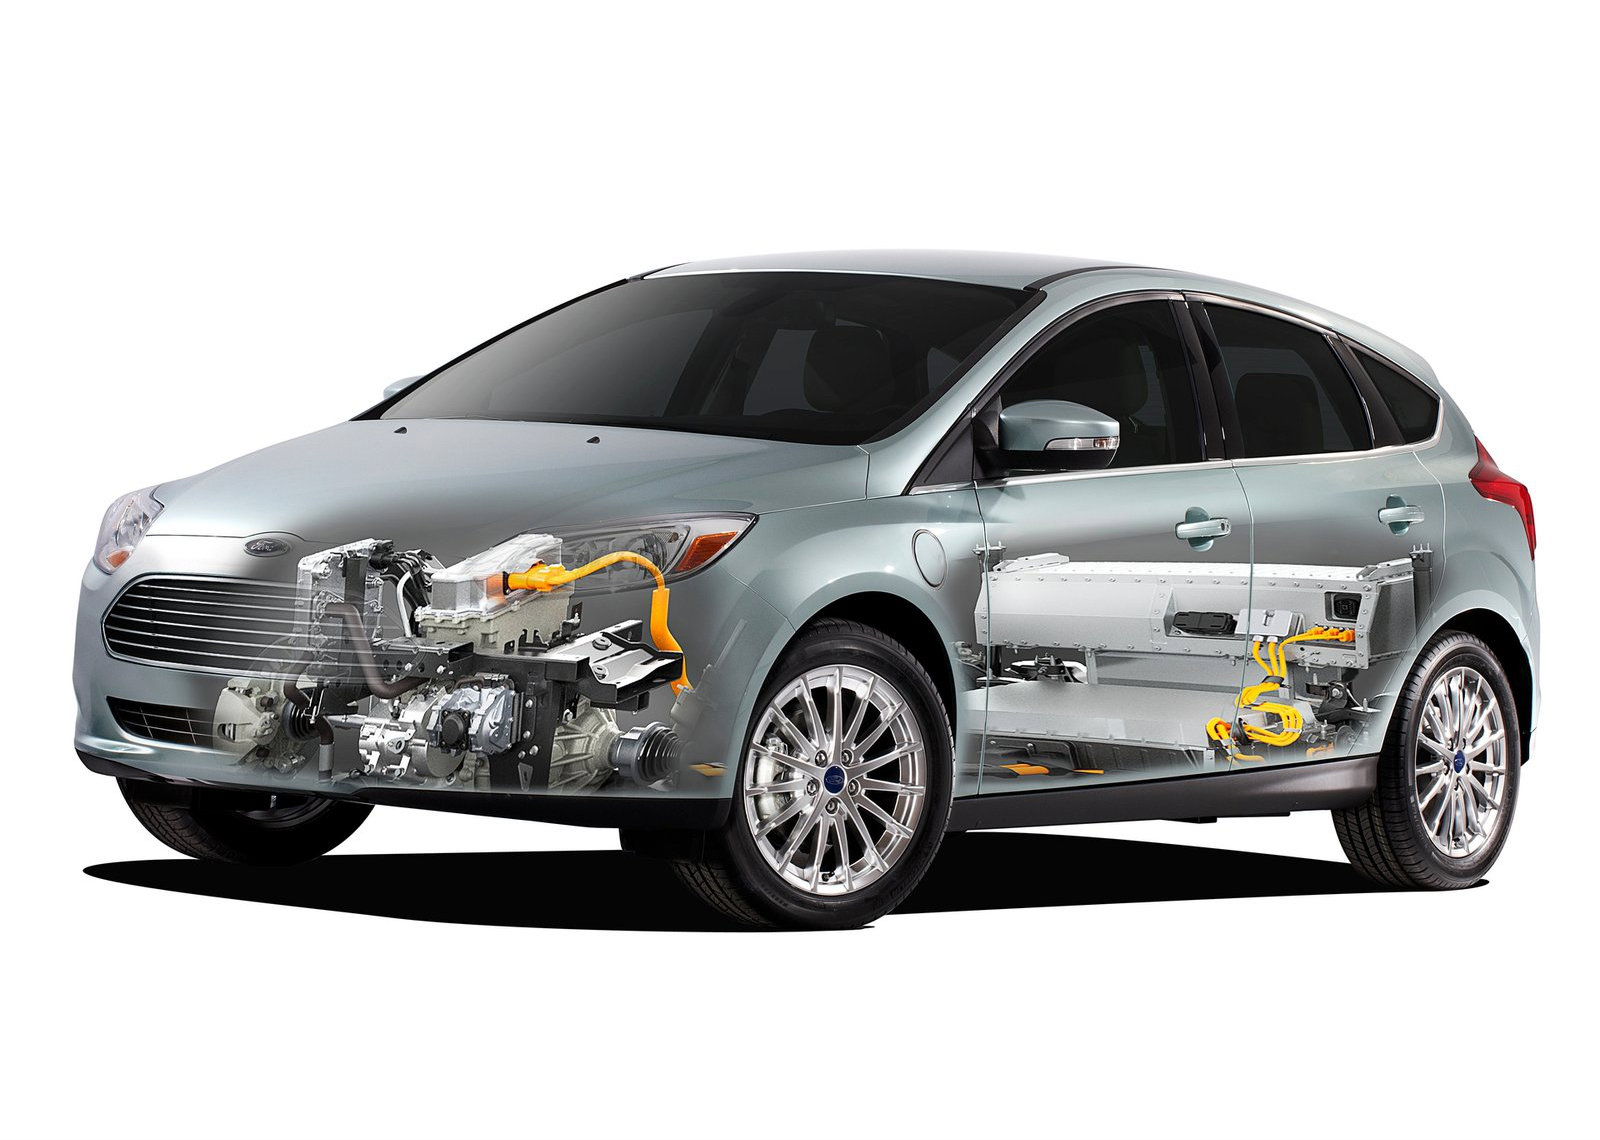 What Happens To Unsold New Model Cars